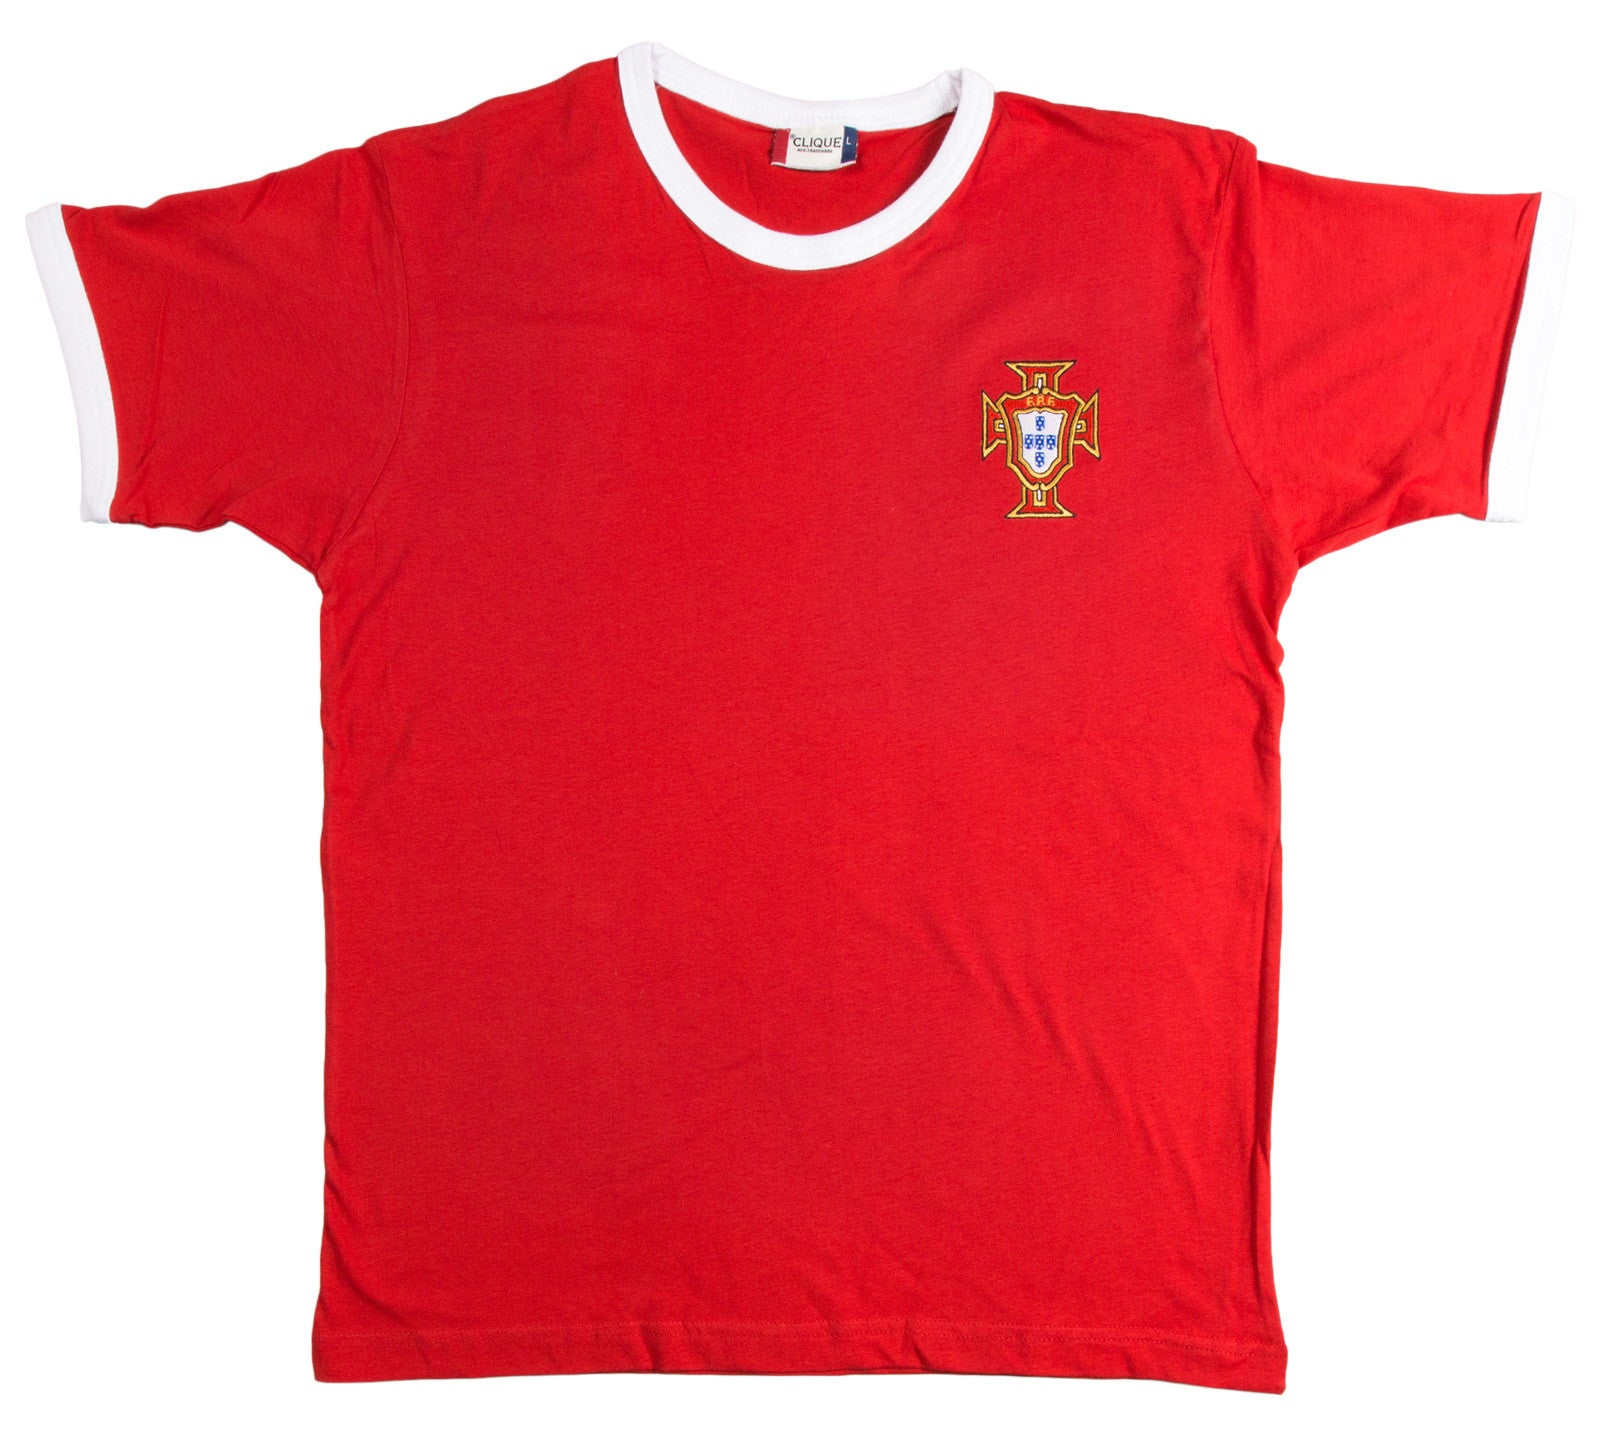 Portugal Retro Football T Shirt 1970s - T-shirt